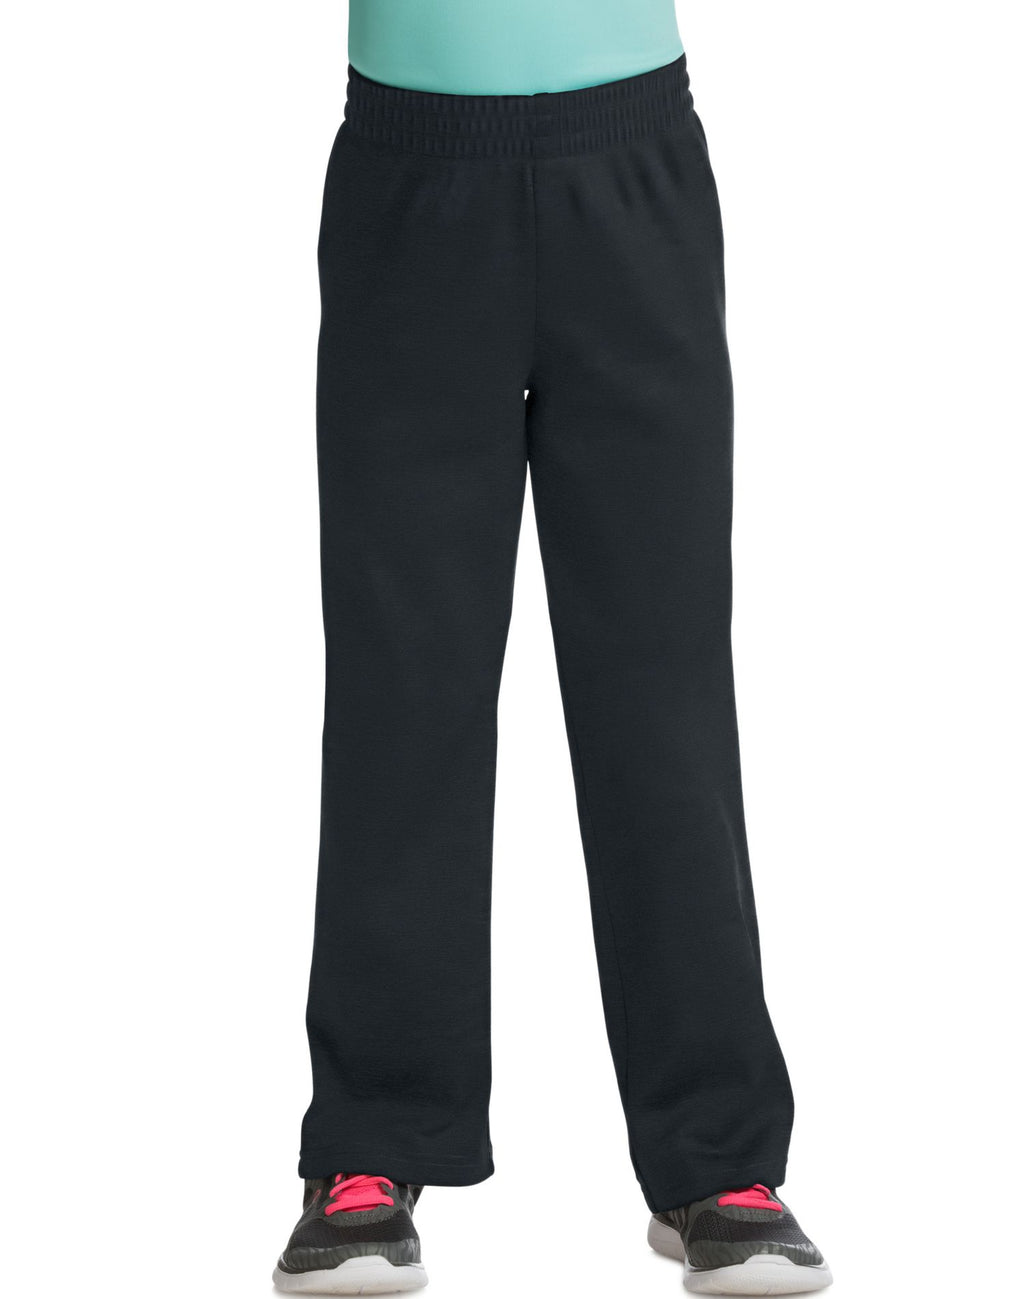 Hanes Girls Sport Tech Fleece Pants